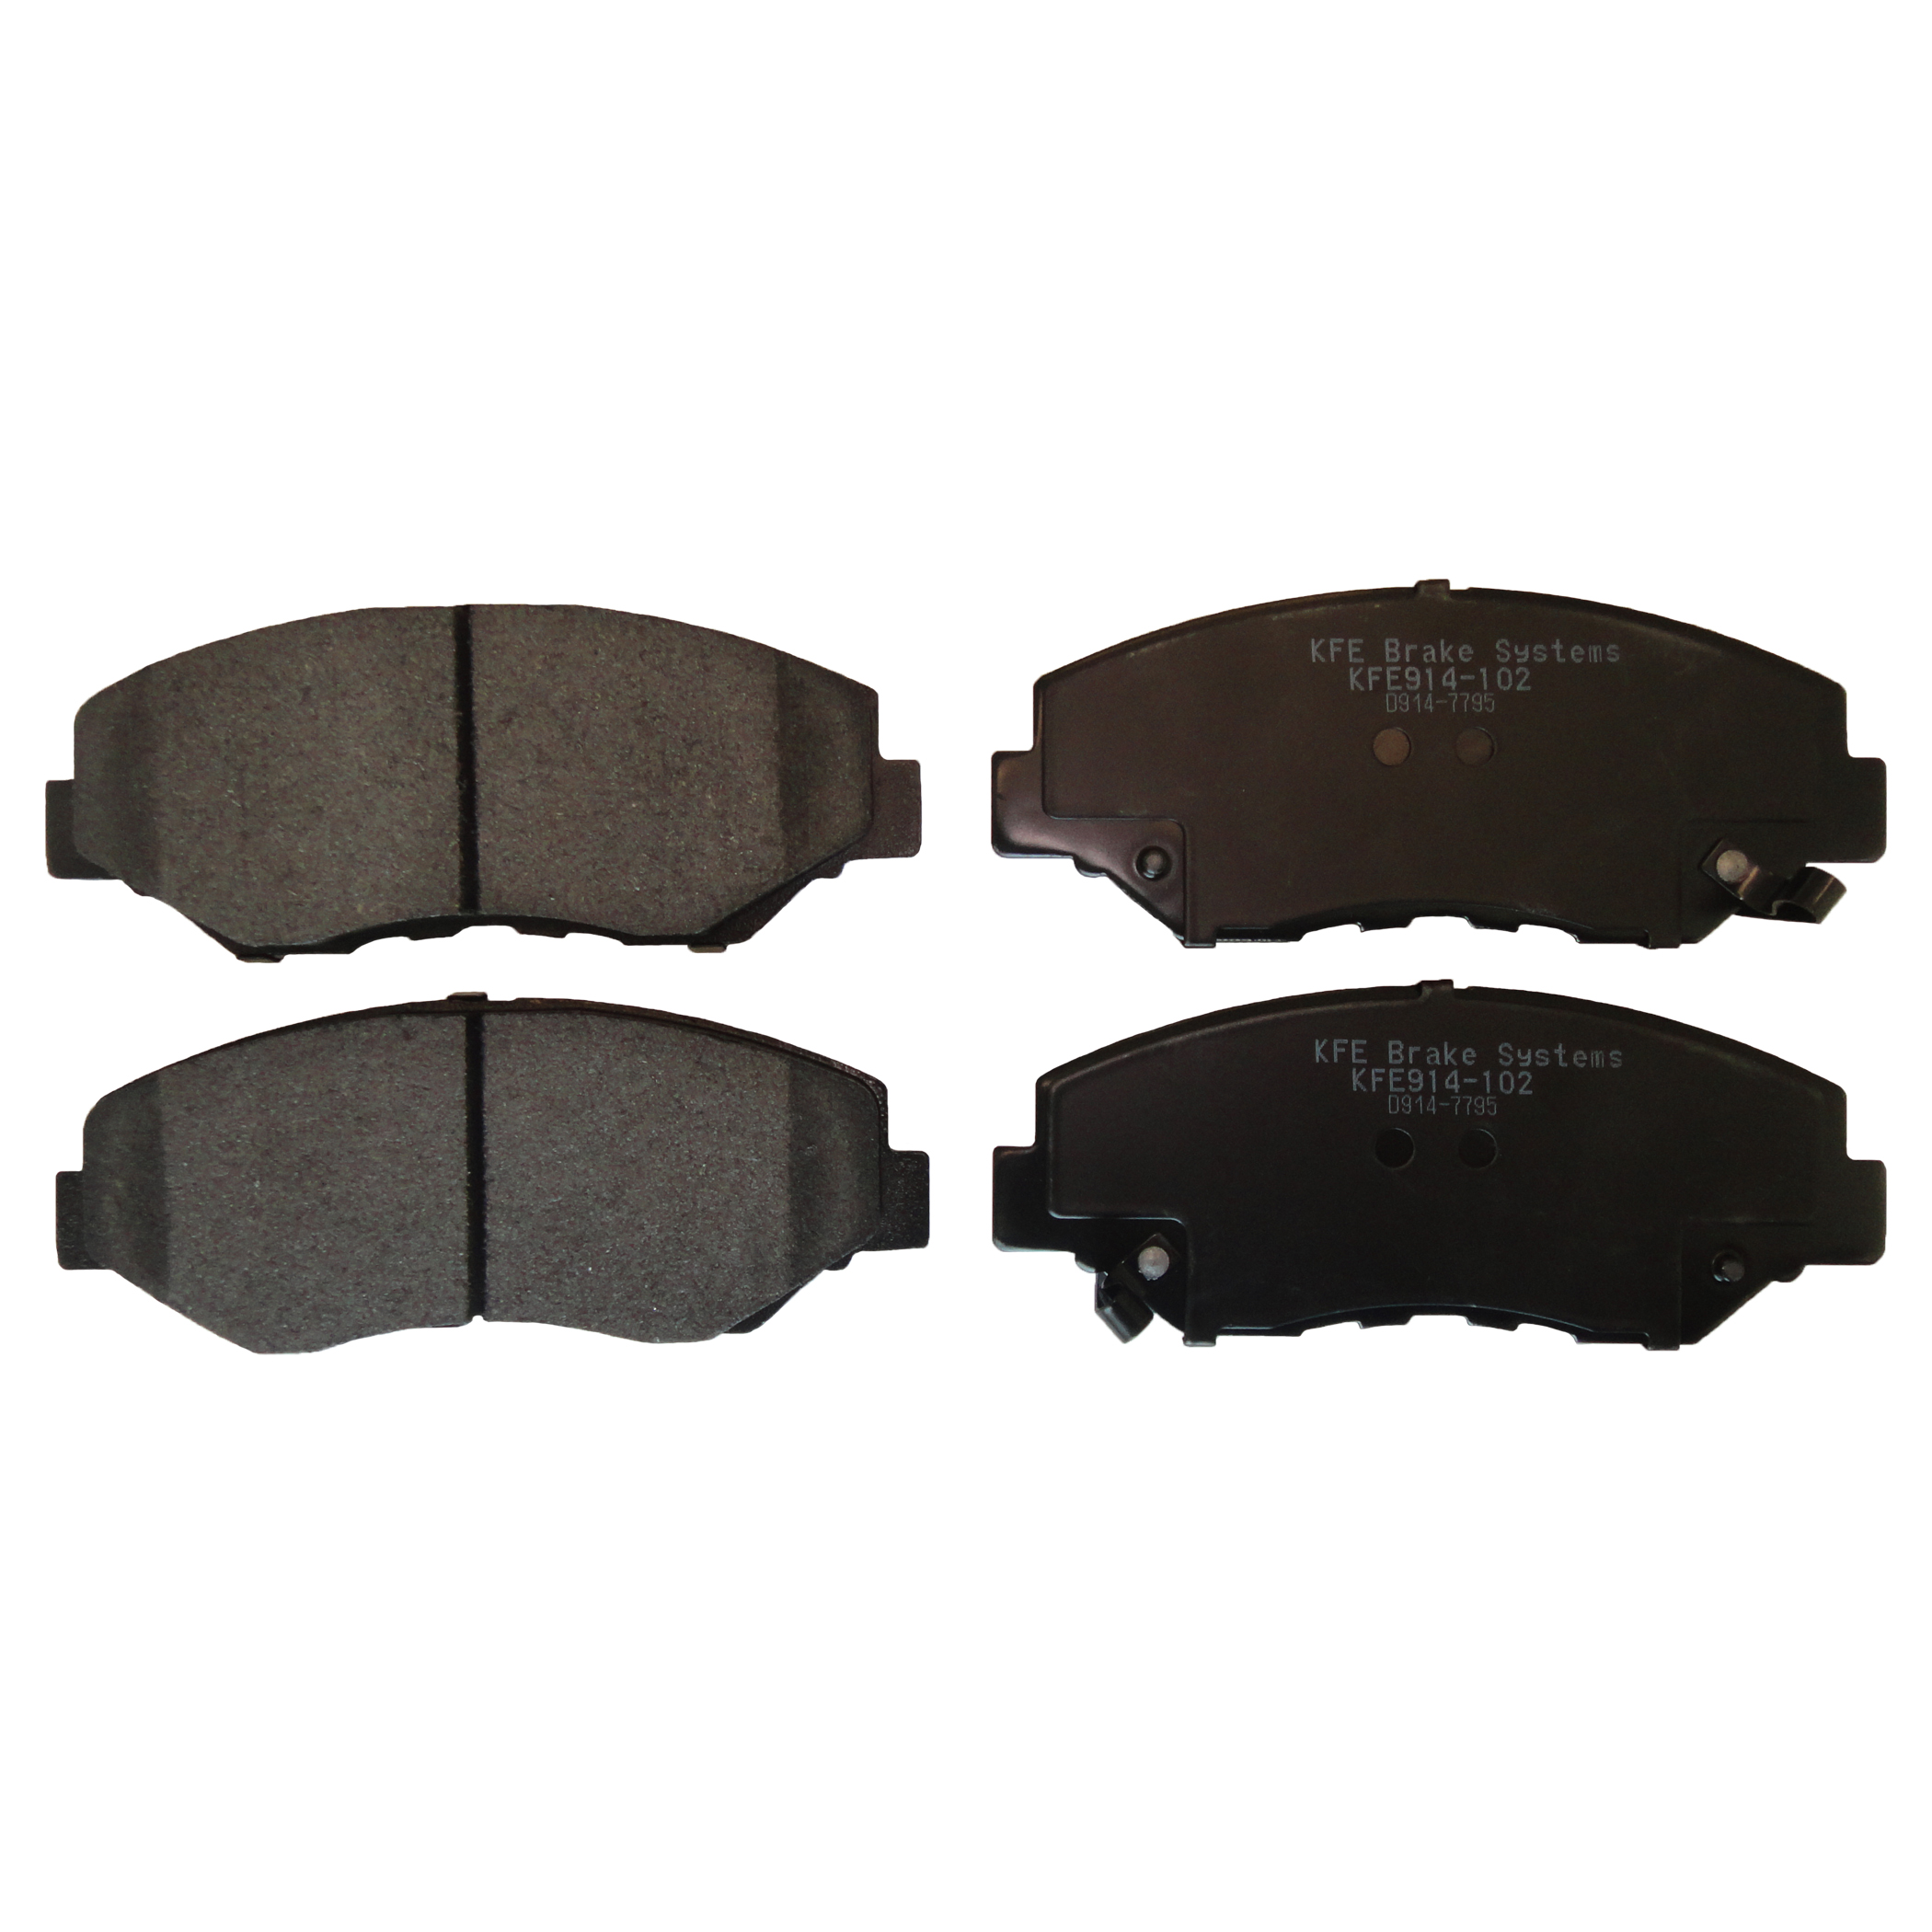 KFE914-102 Quiet Comfort OE Brake Pad